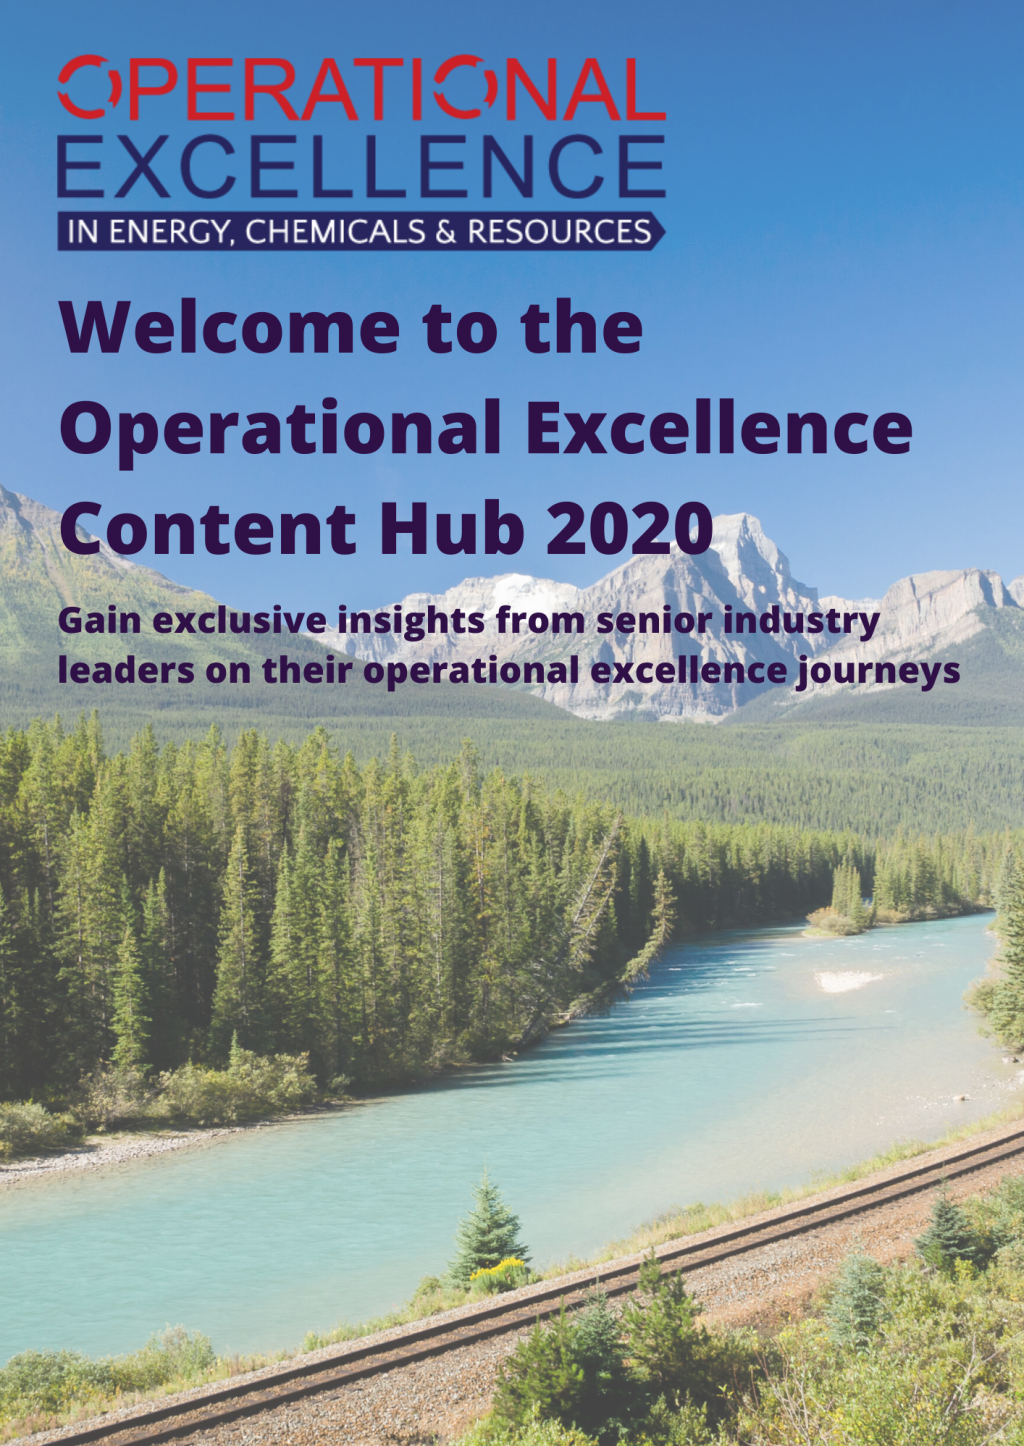 Operational Excellence Content Hub 2020